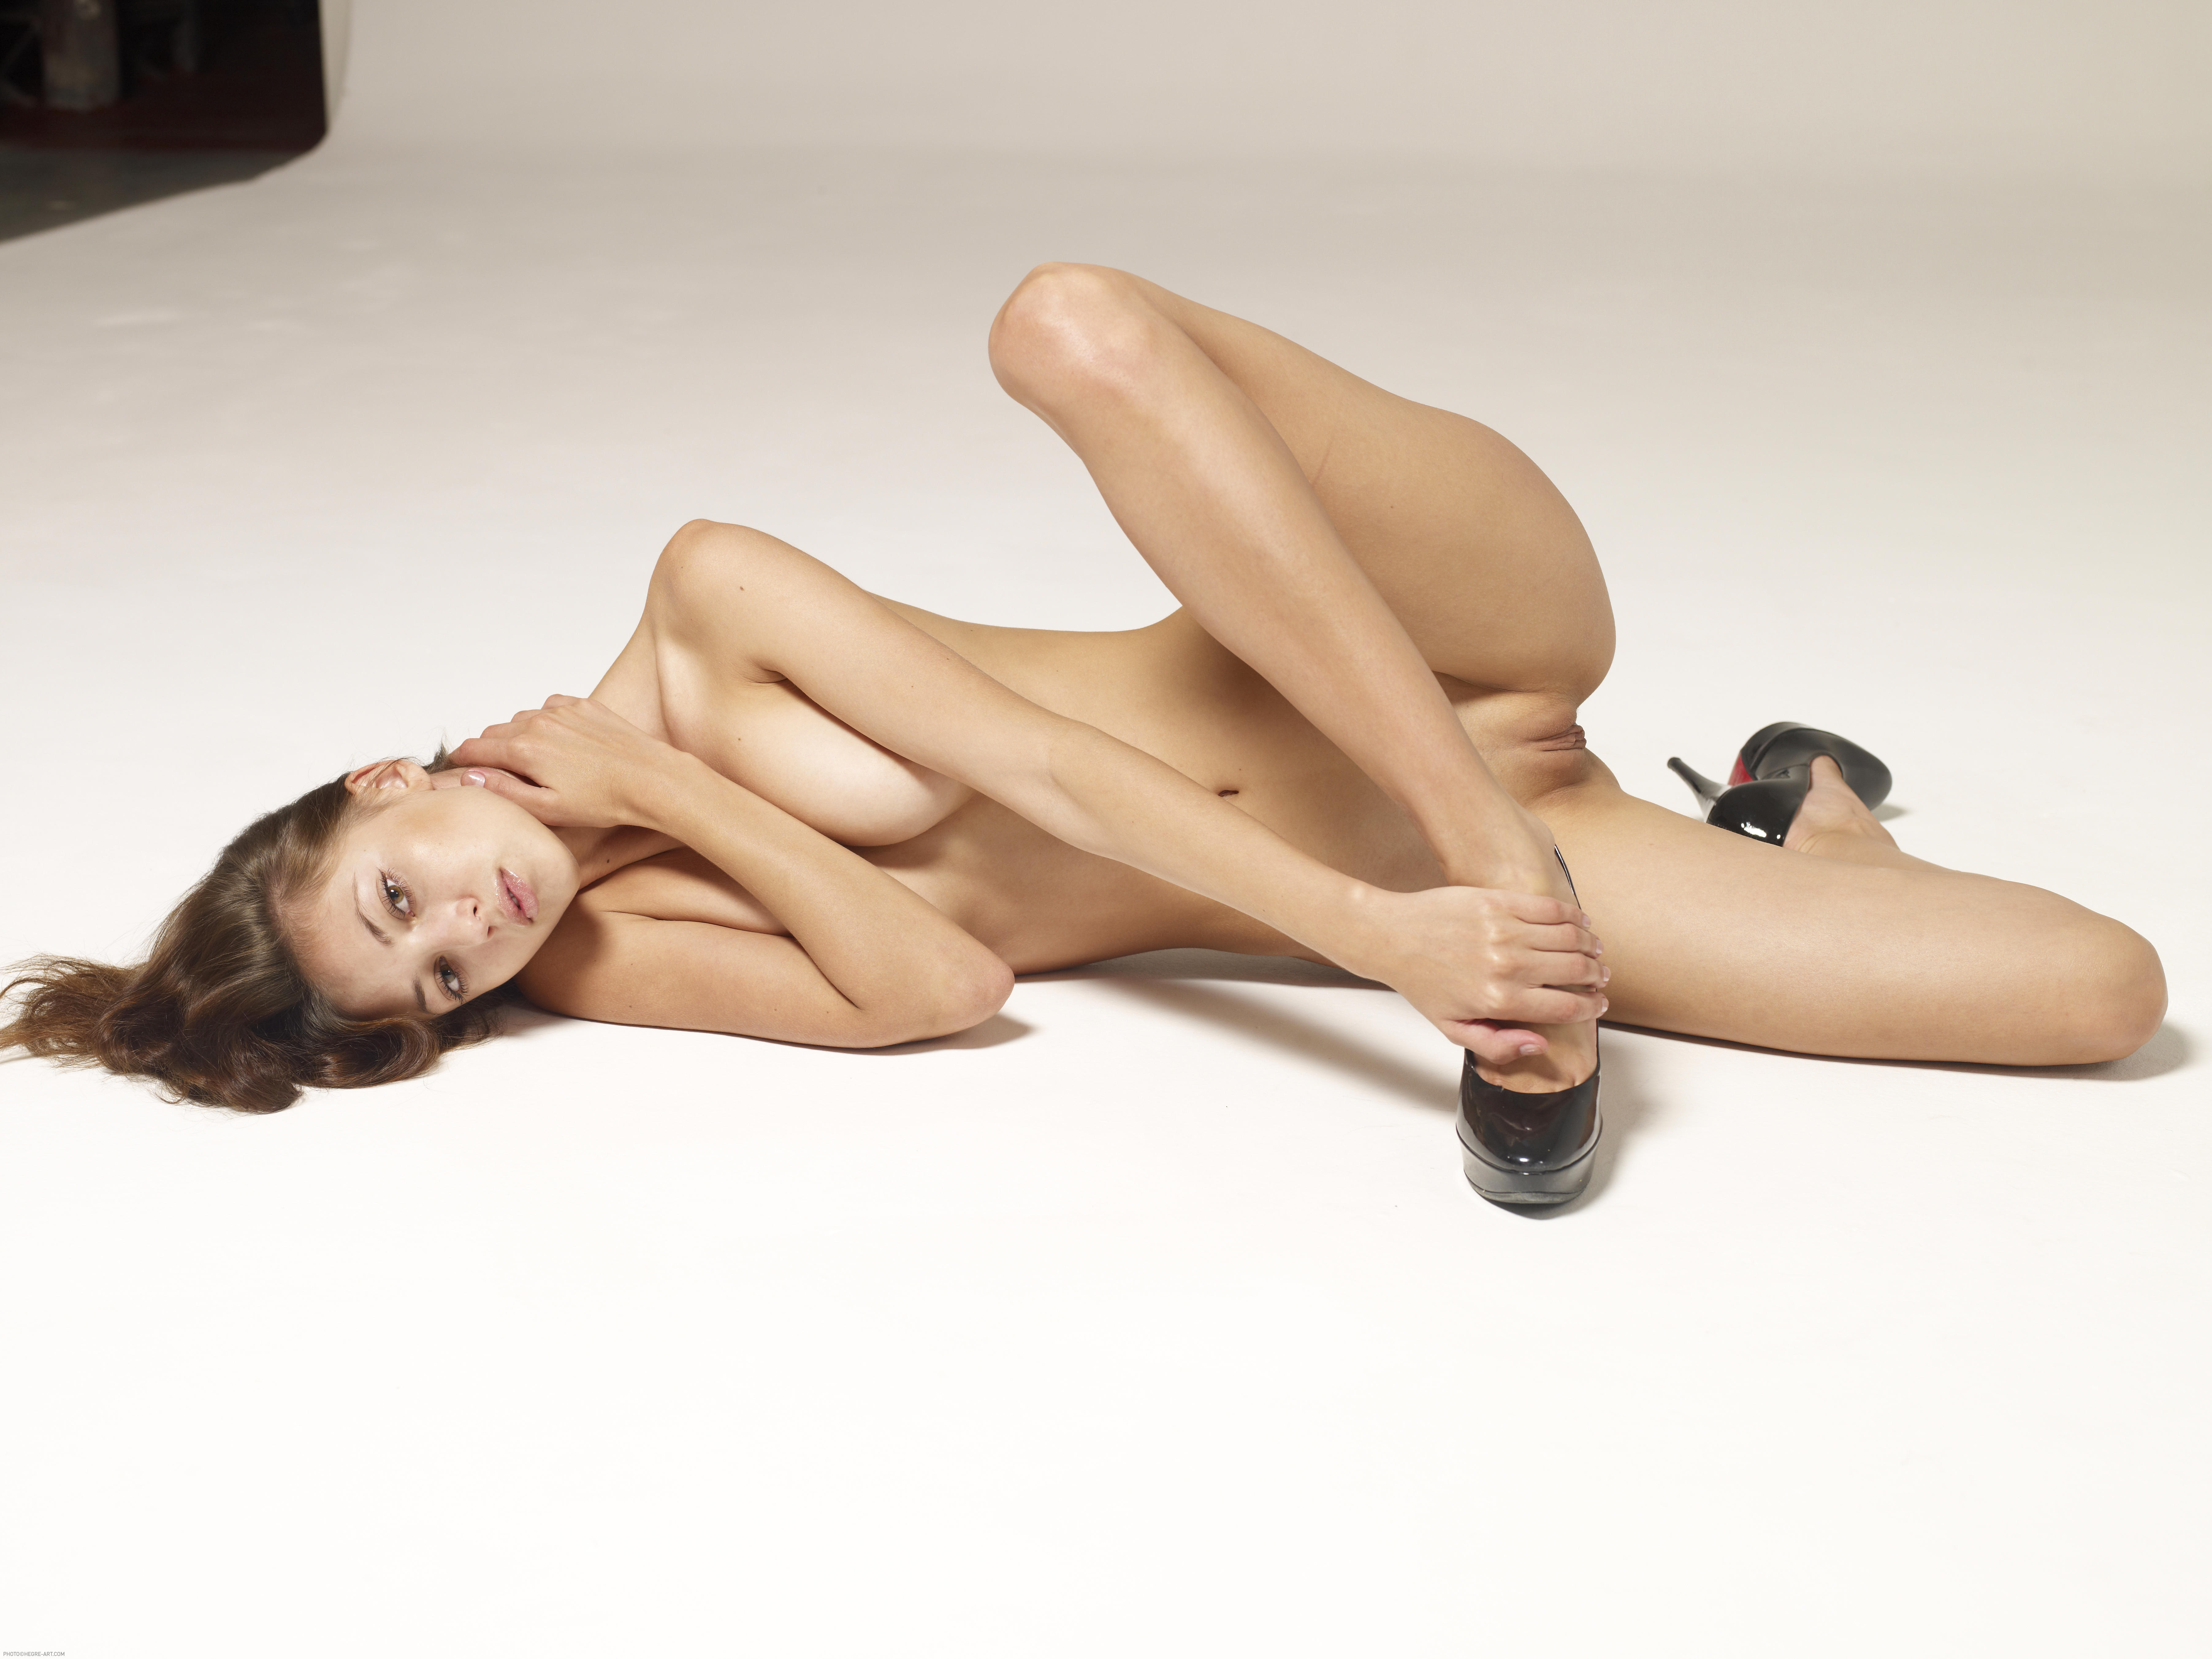 Have removed nude girls lying on floor with